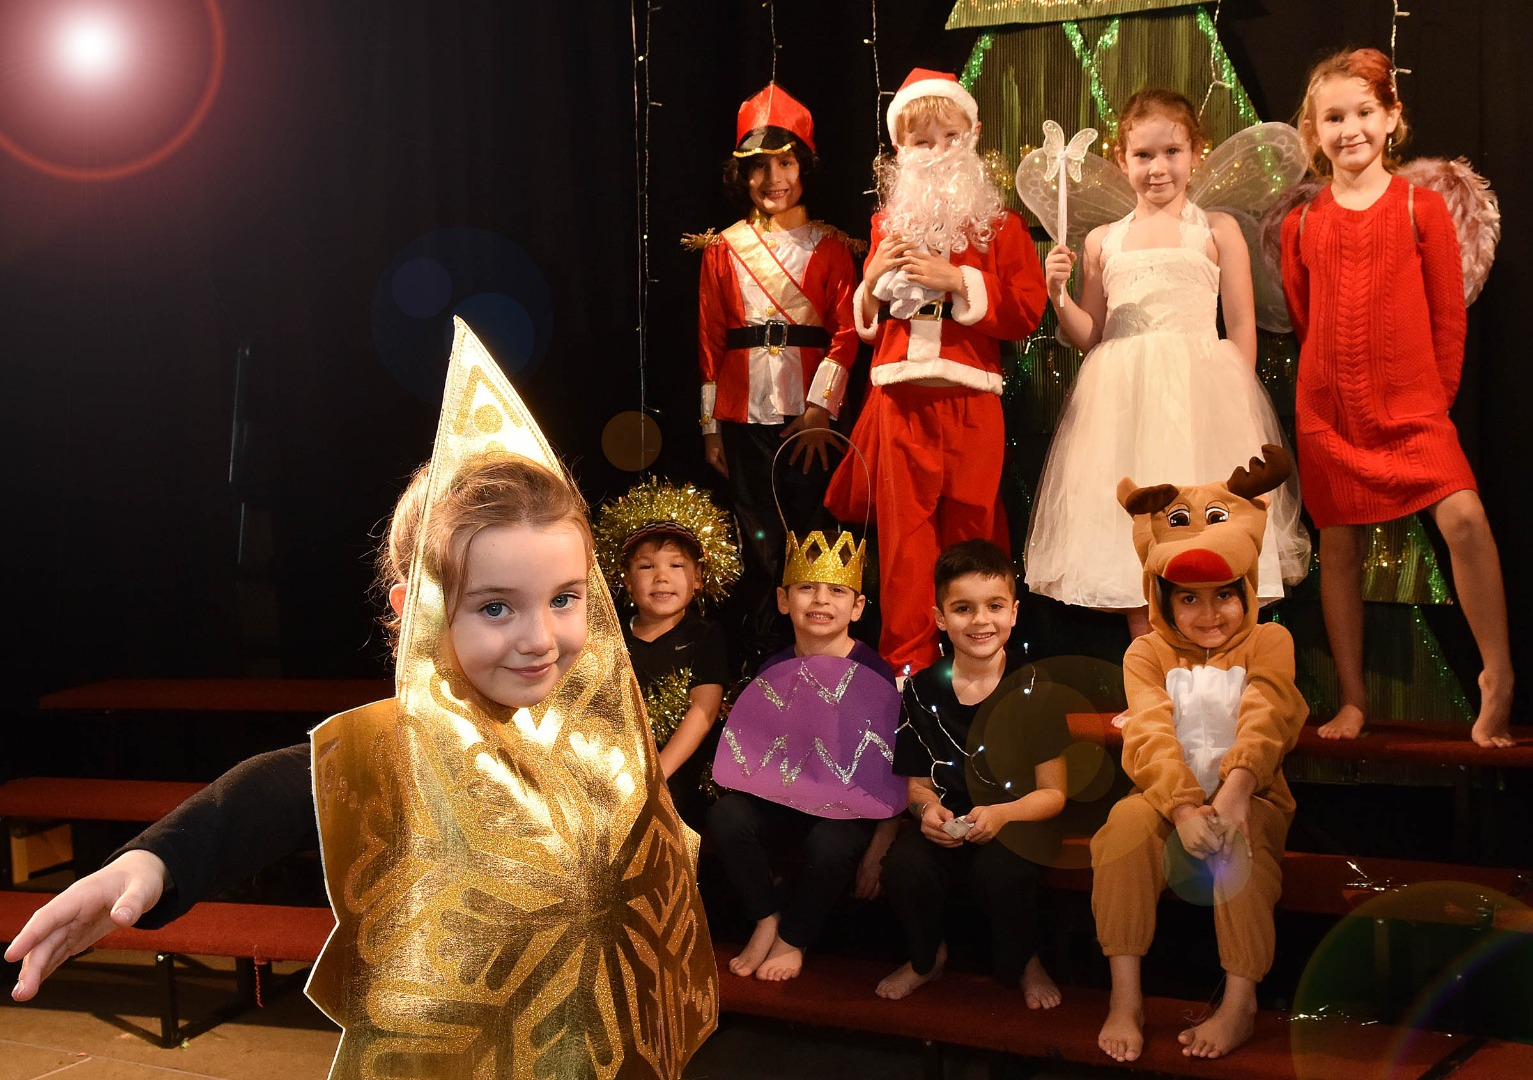 STAR IS THE TOP DECORATION IN GREENBANK NATIVITY